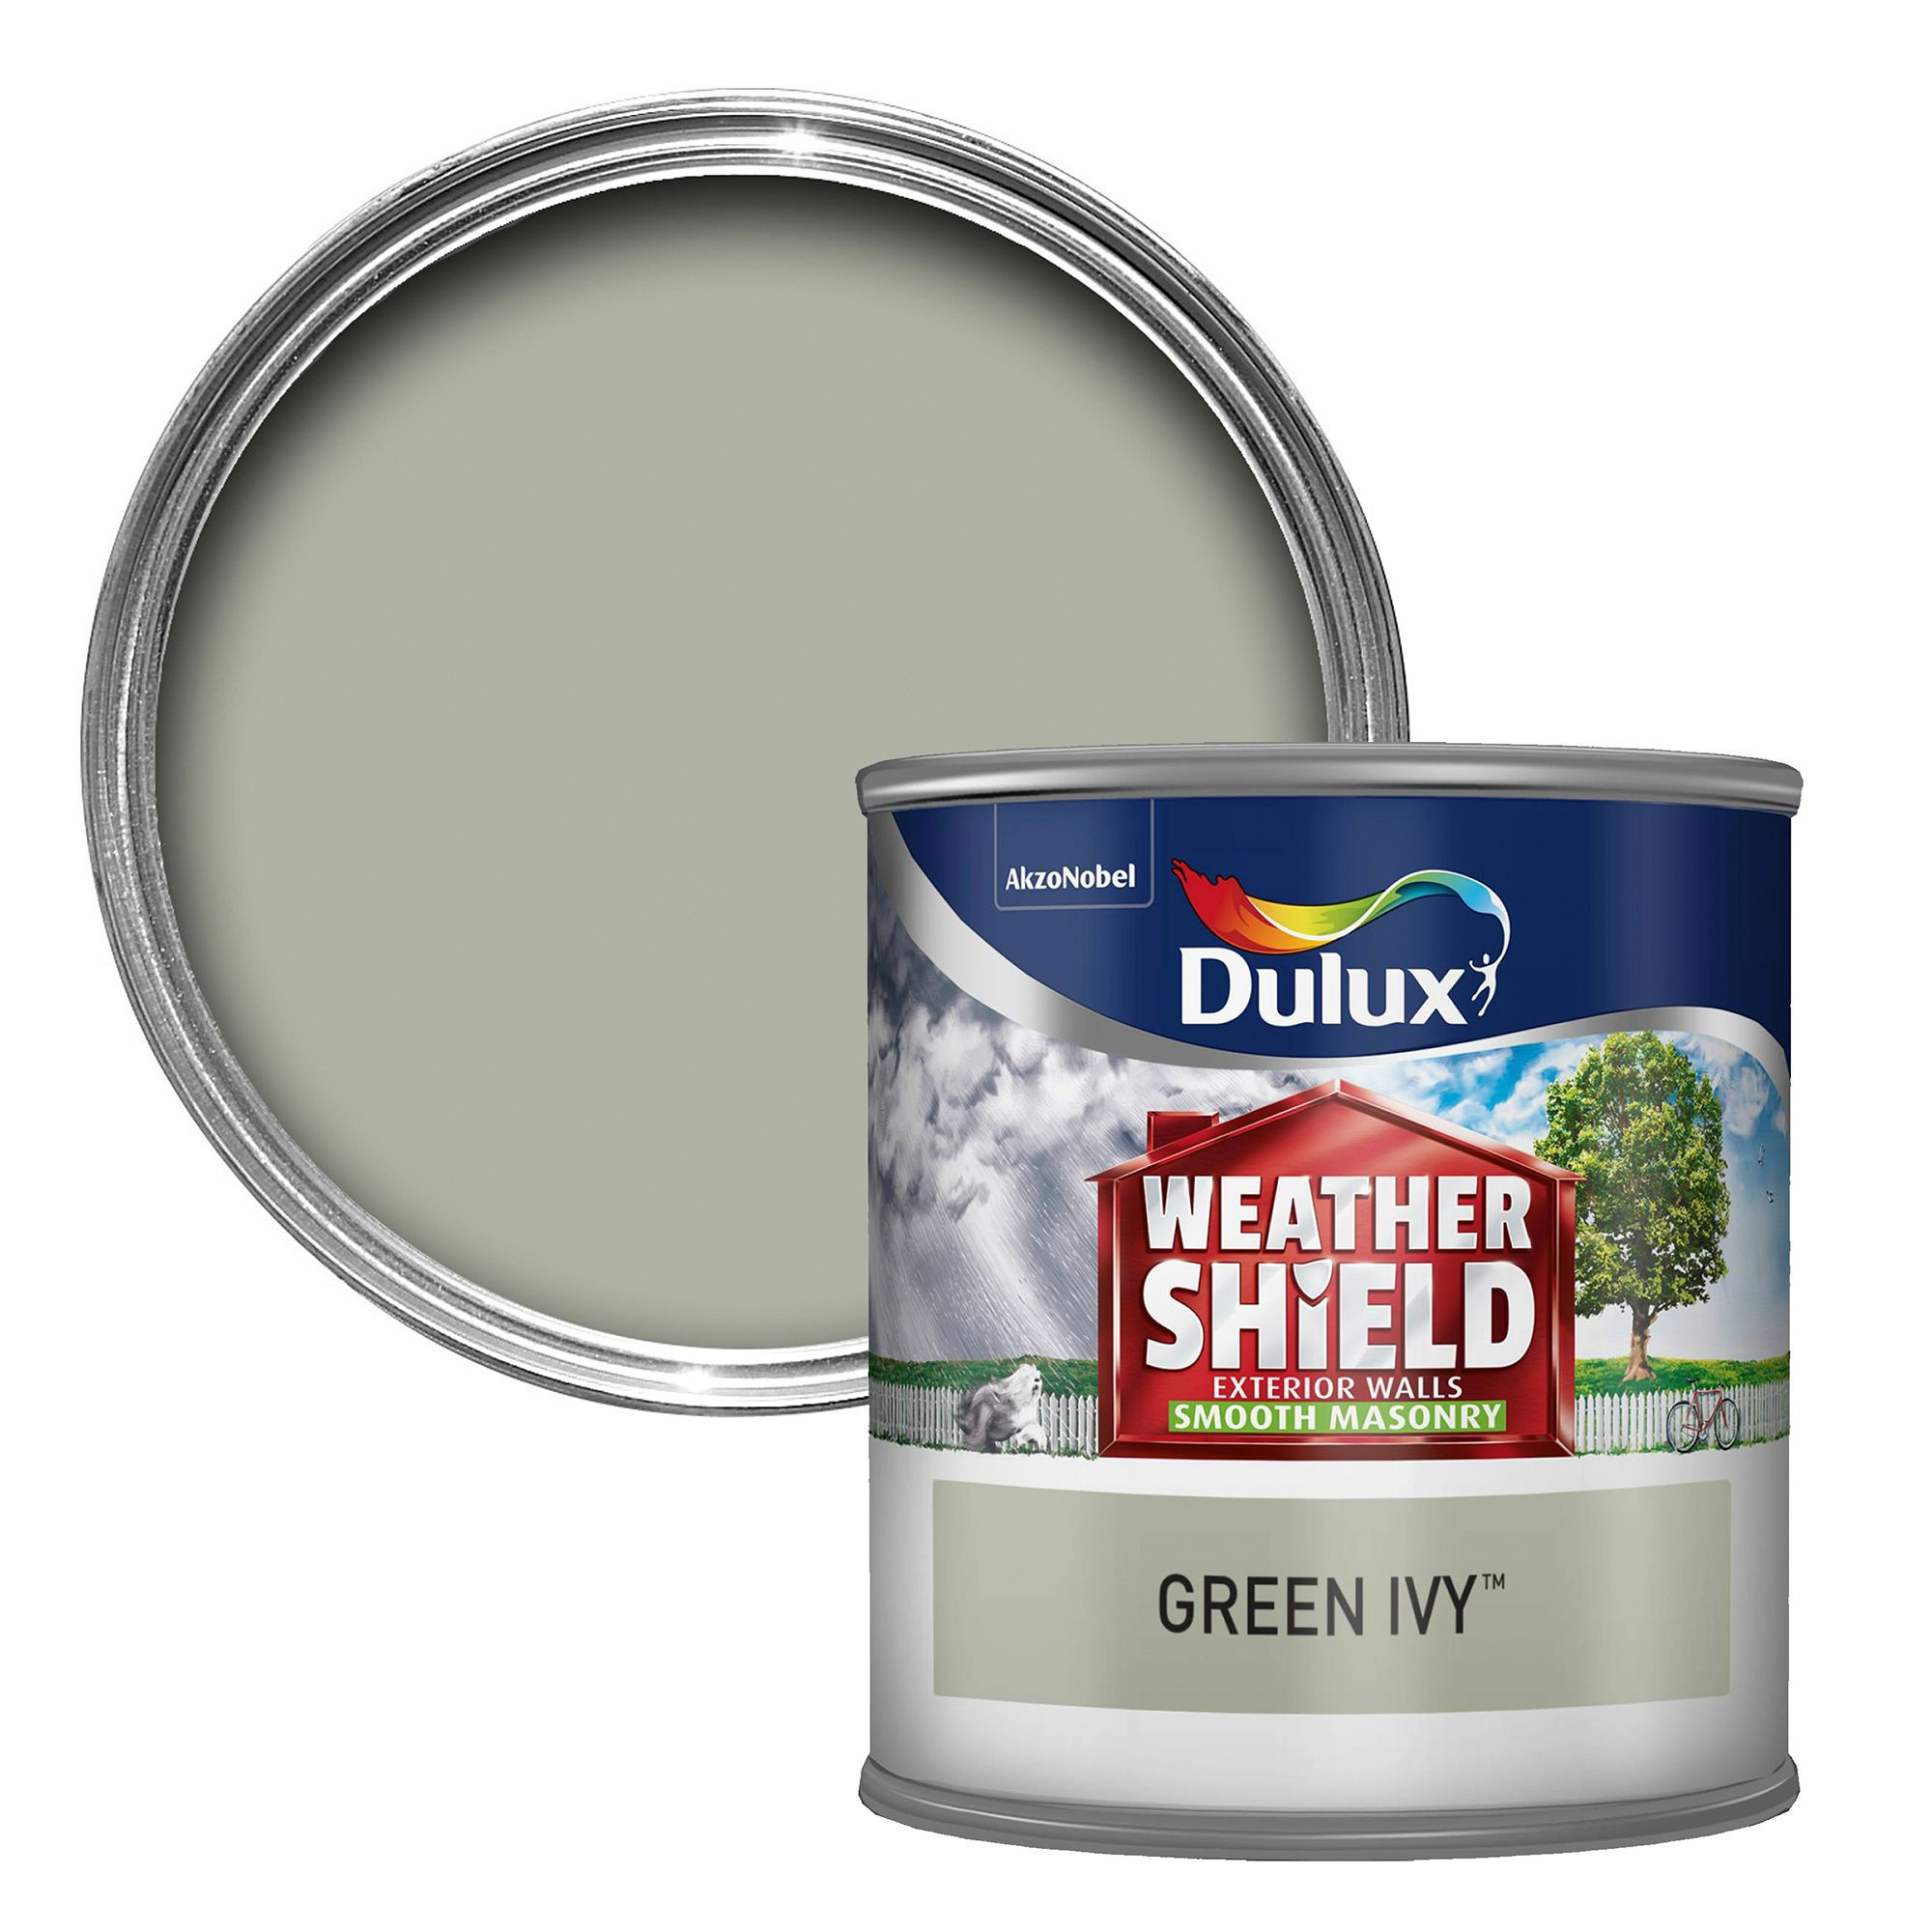 Dulux Weathershield Green Ivy Smooth Matt Masonry Paint Tester Pot Departments Diy At B Q